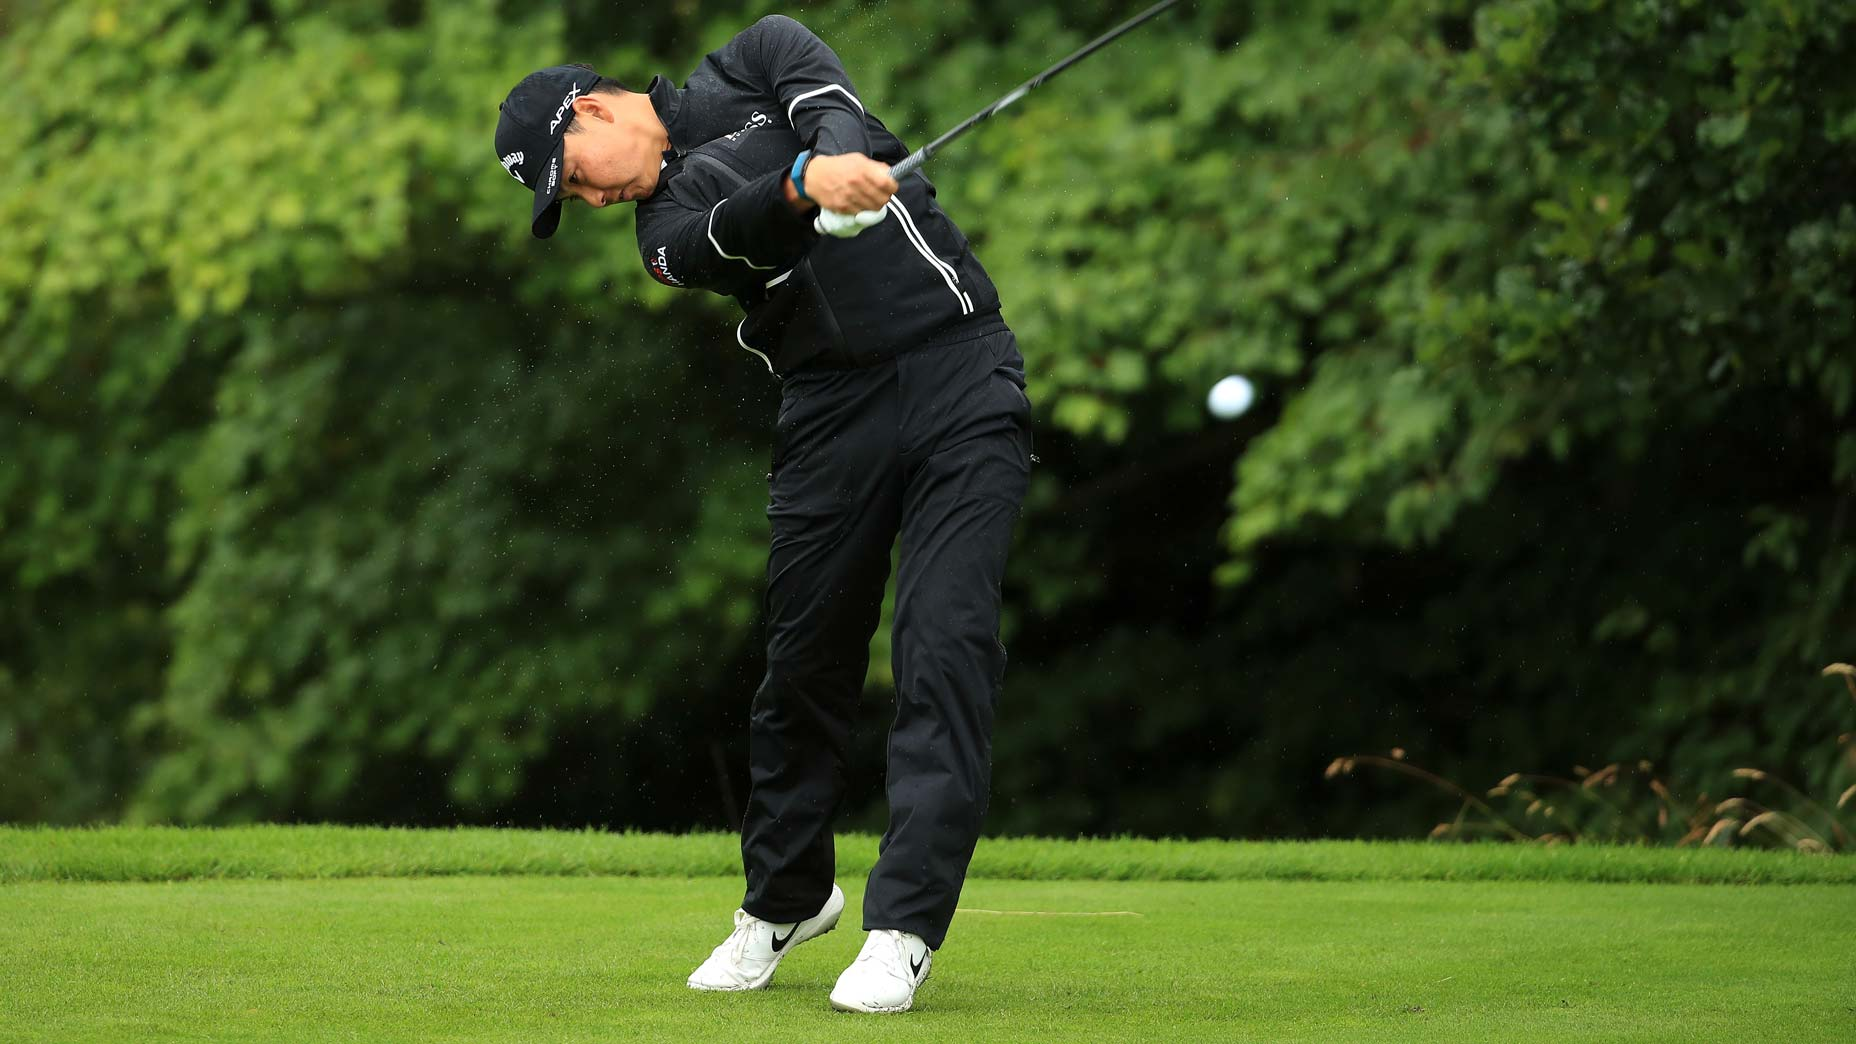 How to hit the perfect low stinger, according to a pro